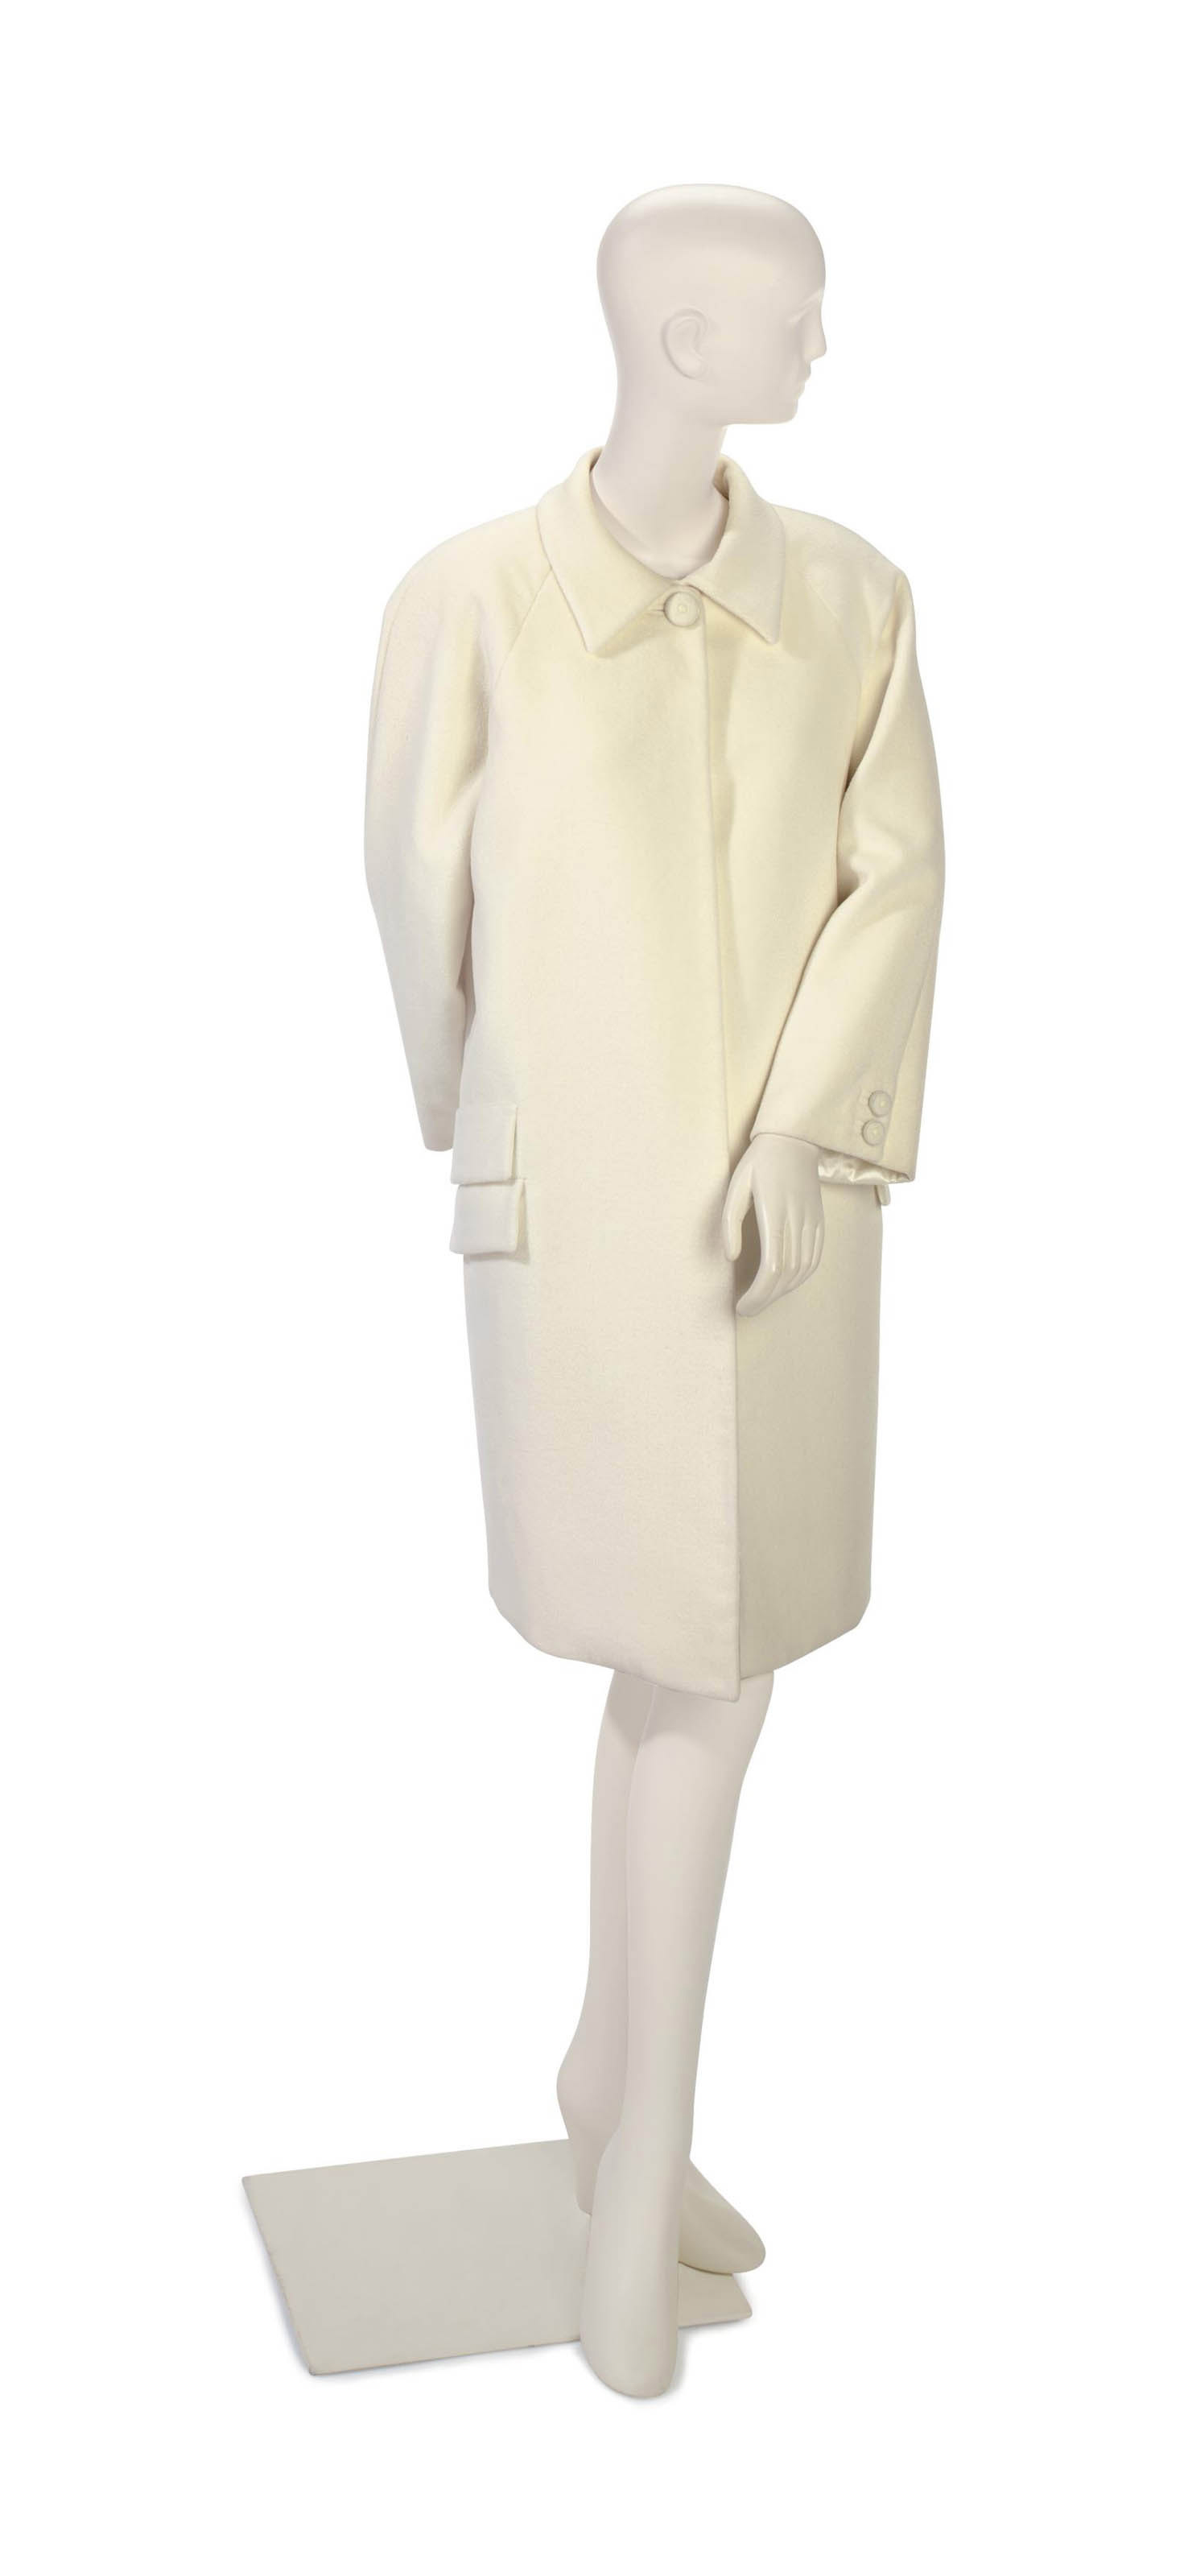 A VERSACE IVORY CASHMERE COAT